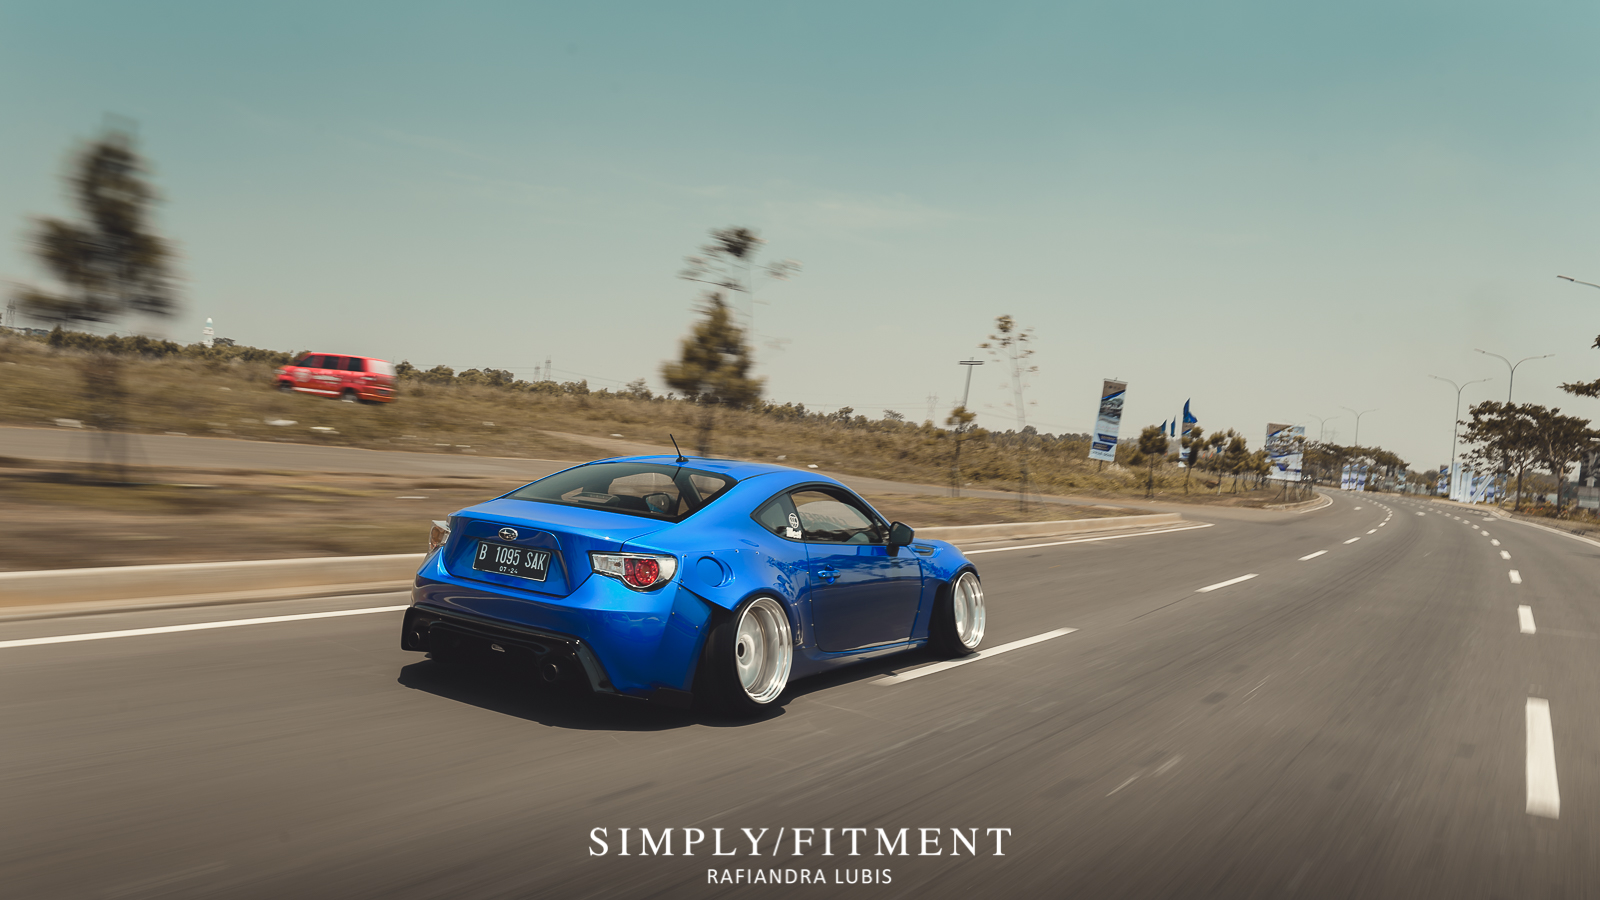 Alehoed S Rocket Bunny V1 Widebody Kit Subaru Brz 2014